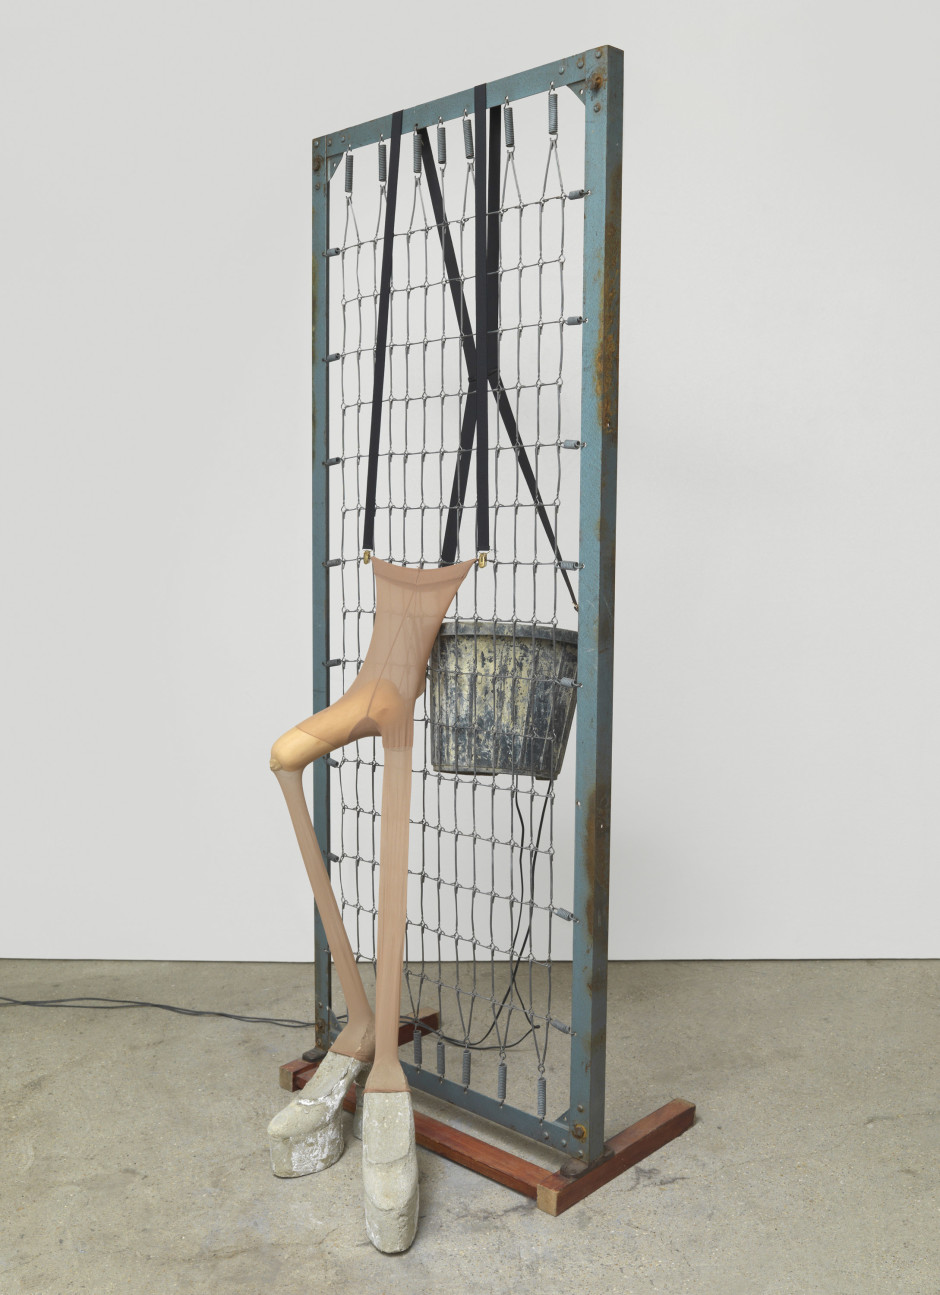 Man versus human nature-2012, 2005  plastic bucket, wood and steel bed base, braces, cement, nylon tights, butternut squash  194.3 x 76.2 x 45.7 cm  76 ½ x 30 x 18 in.